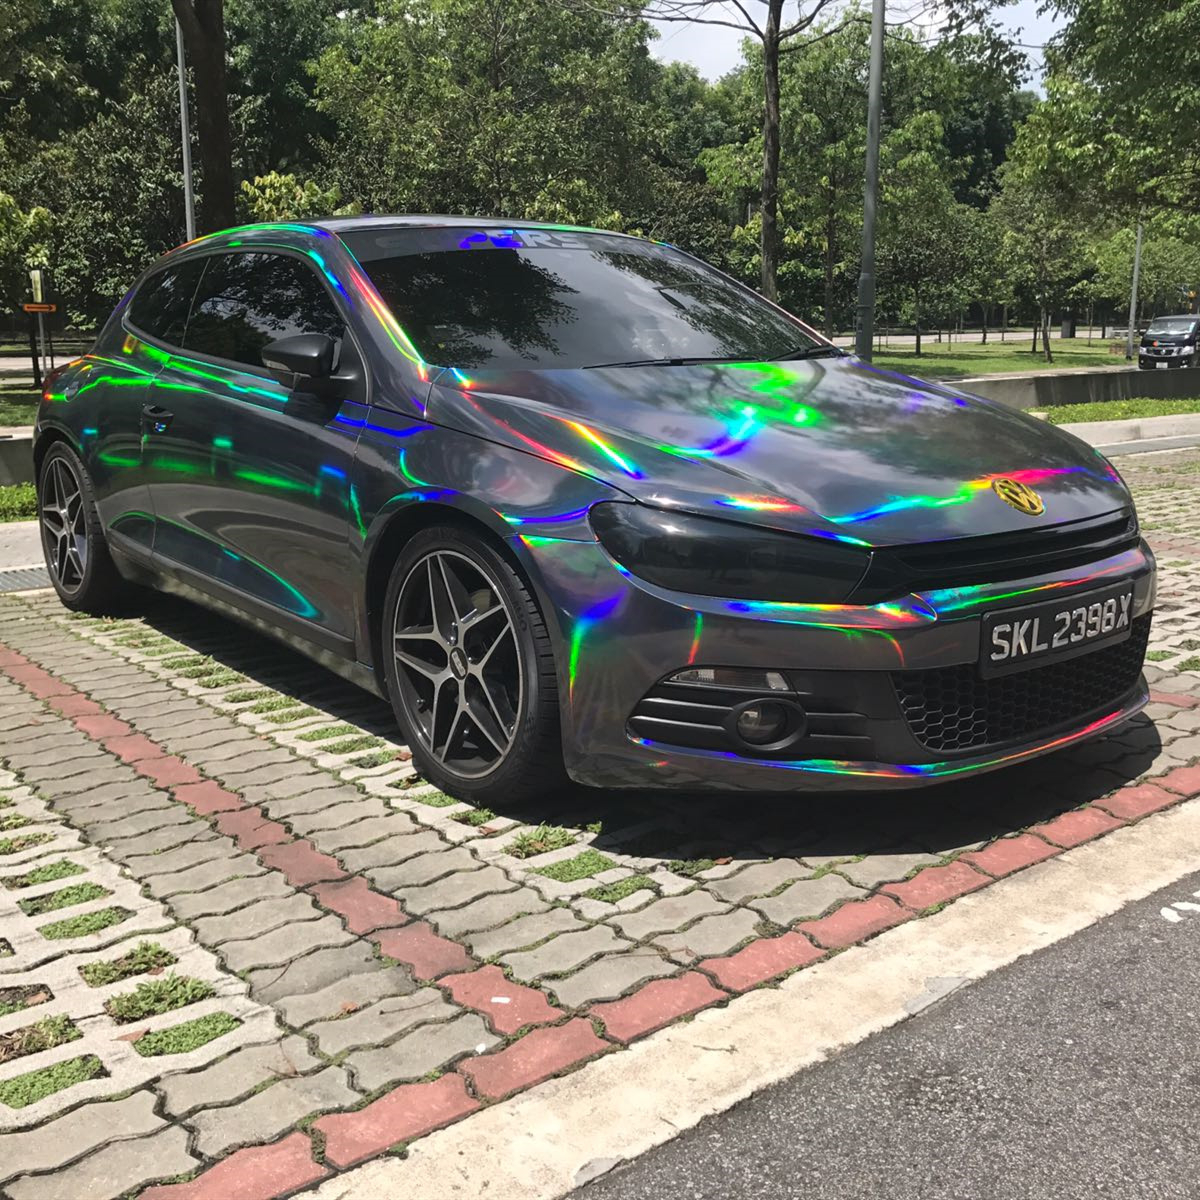 Premium Silver Purple Gold Black Chrome Holographic Vinyl Wrap Rainbow Laser Vinyl Film Bubble Free Car Sticker